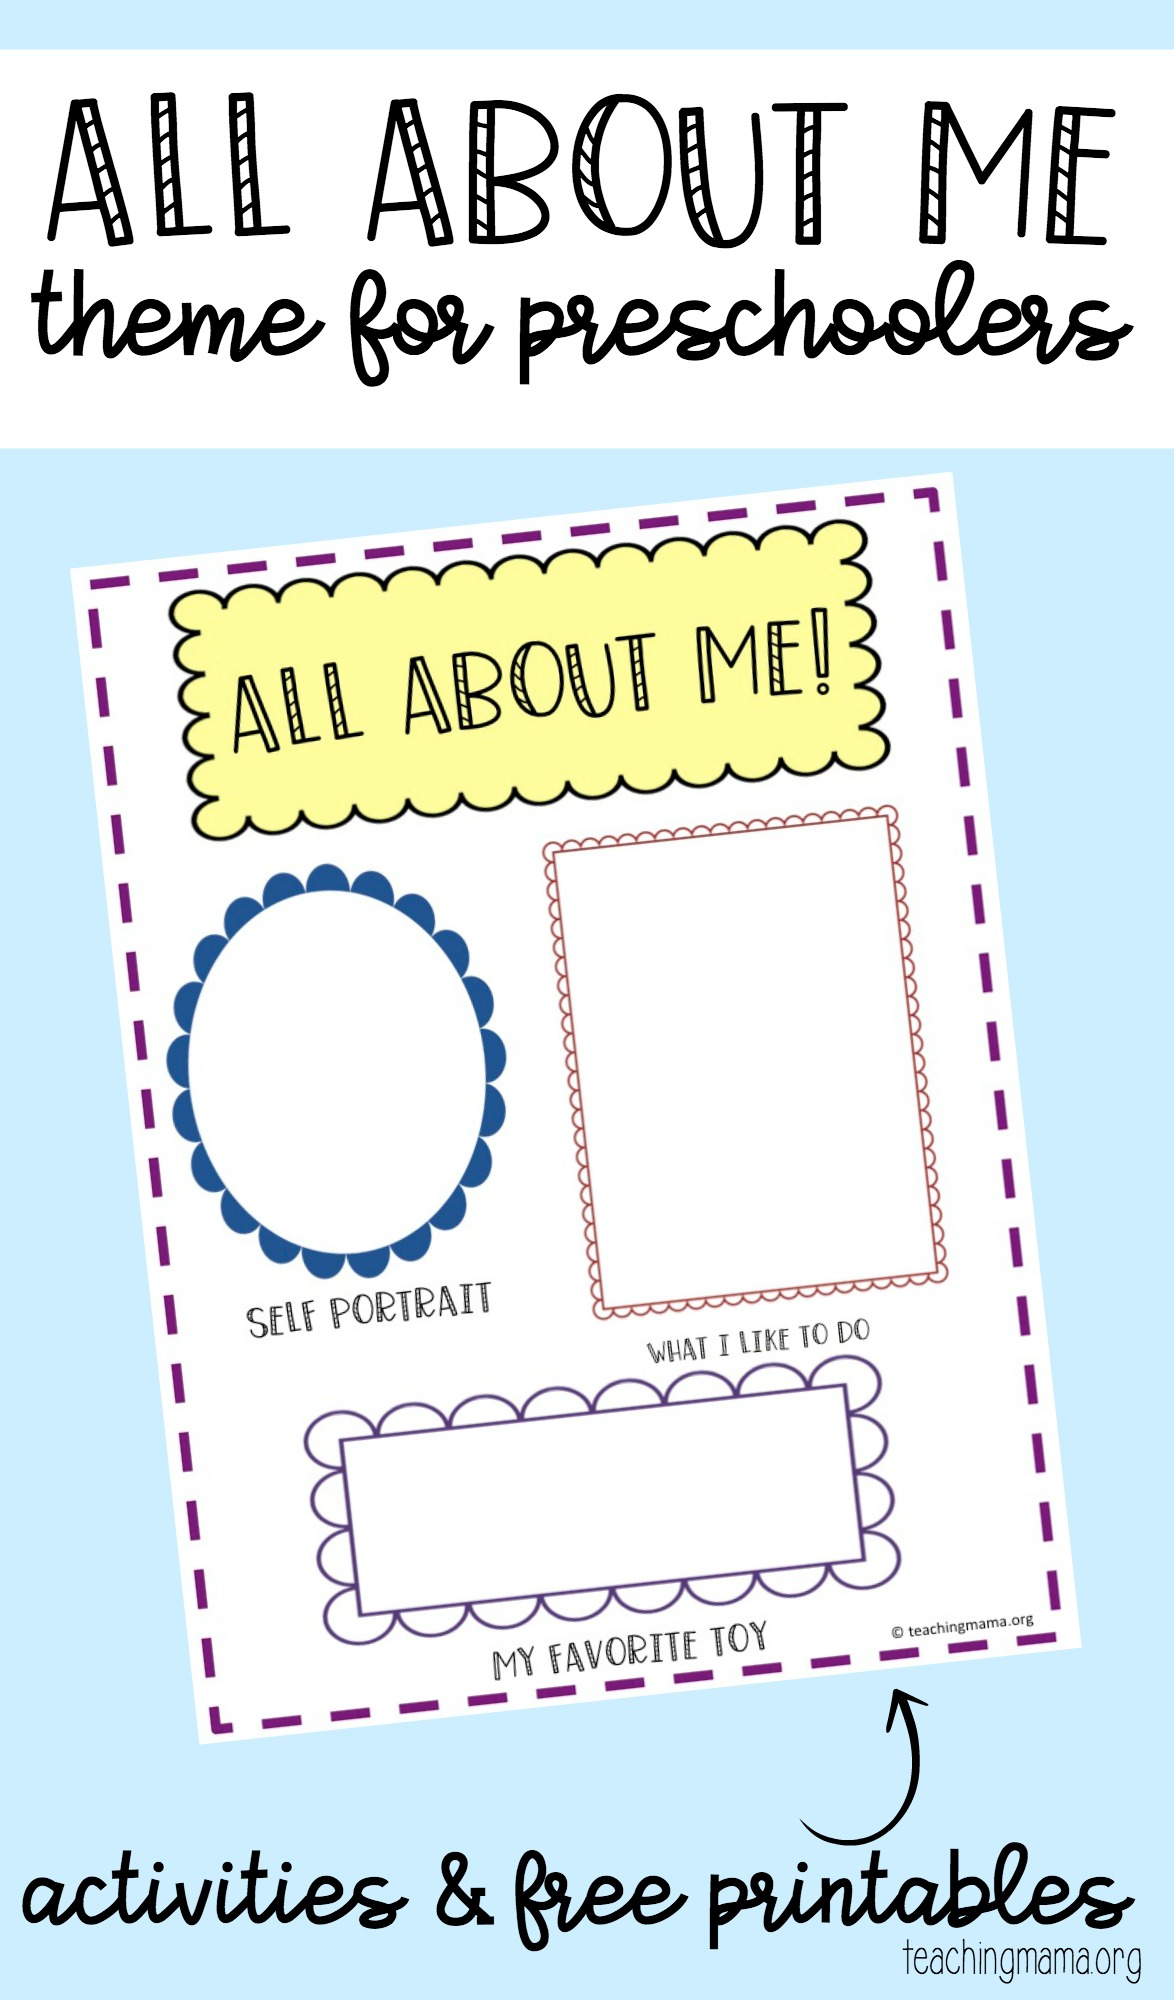 all about me Fun children's learning activities, including printable templates, for preschool, kindergarten and elementary school kids.